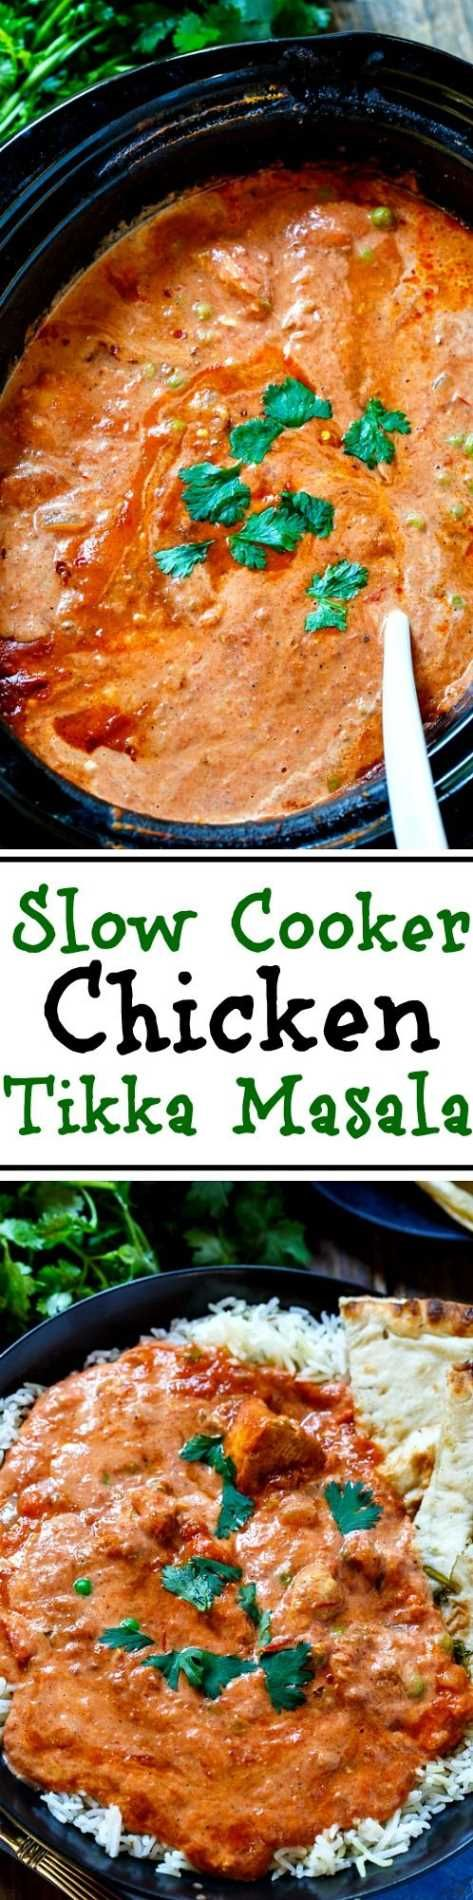 20 Of The Best Slow Cooker Recipes Ever - If you love cooking with your slow cooker you are going to absolutely love these recipes.